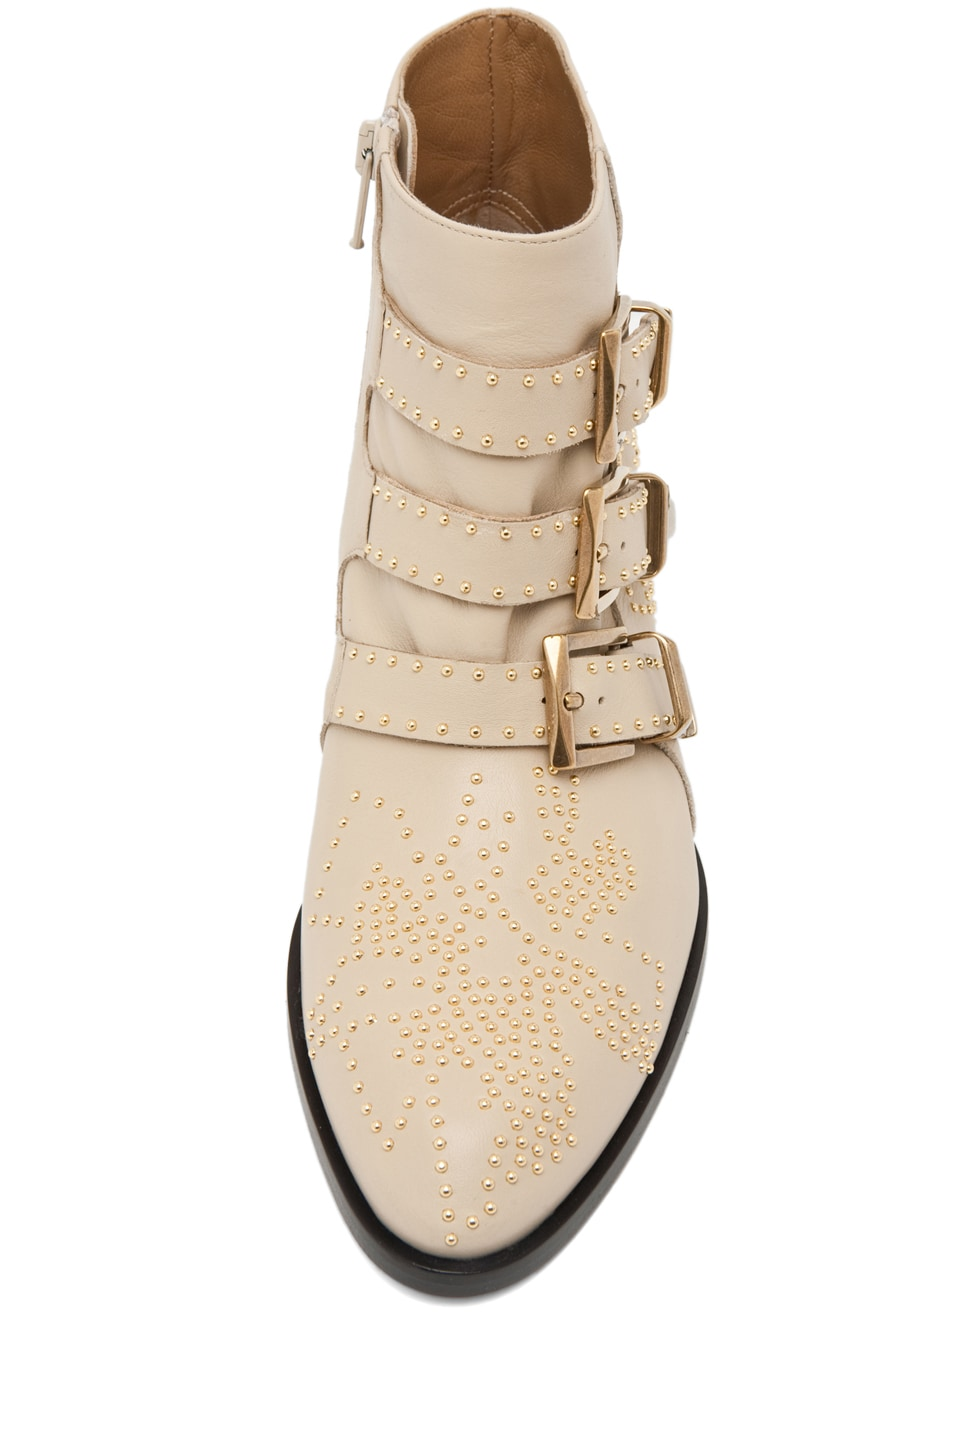 Image 4 of Chloe Susanna Leather Studded Bootie in Cream